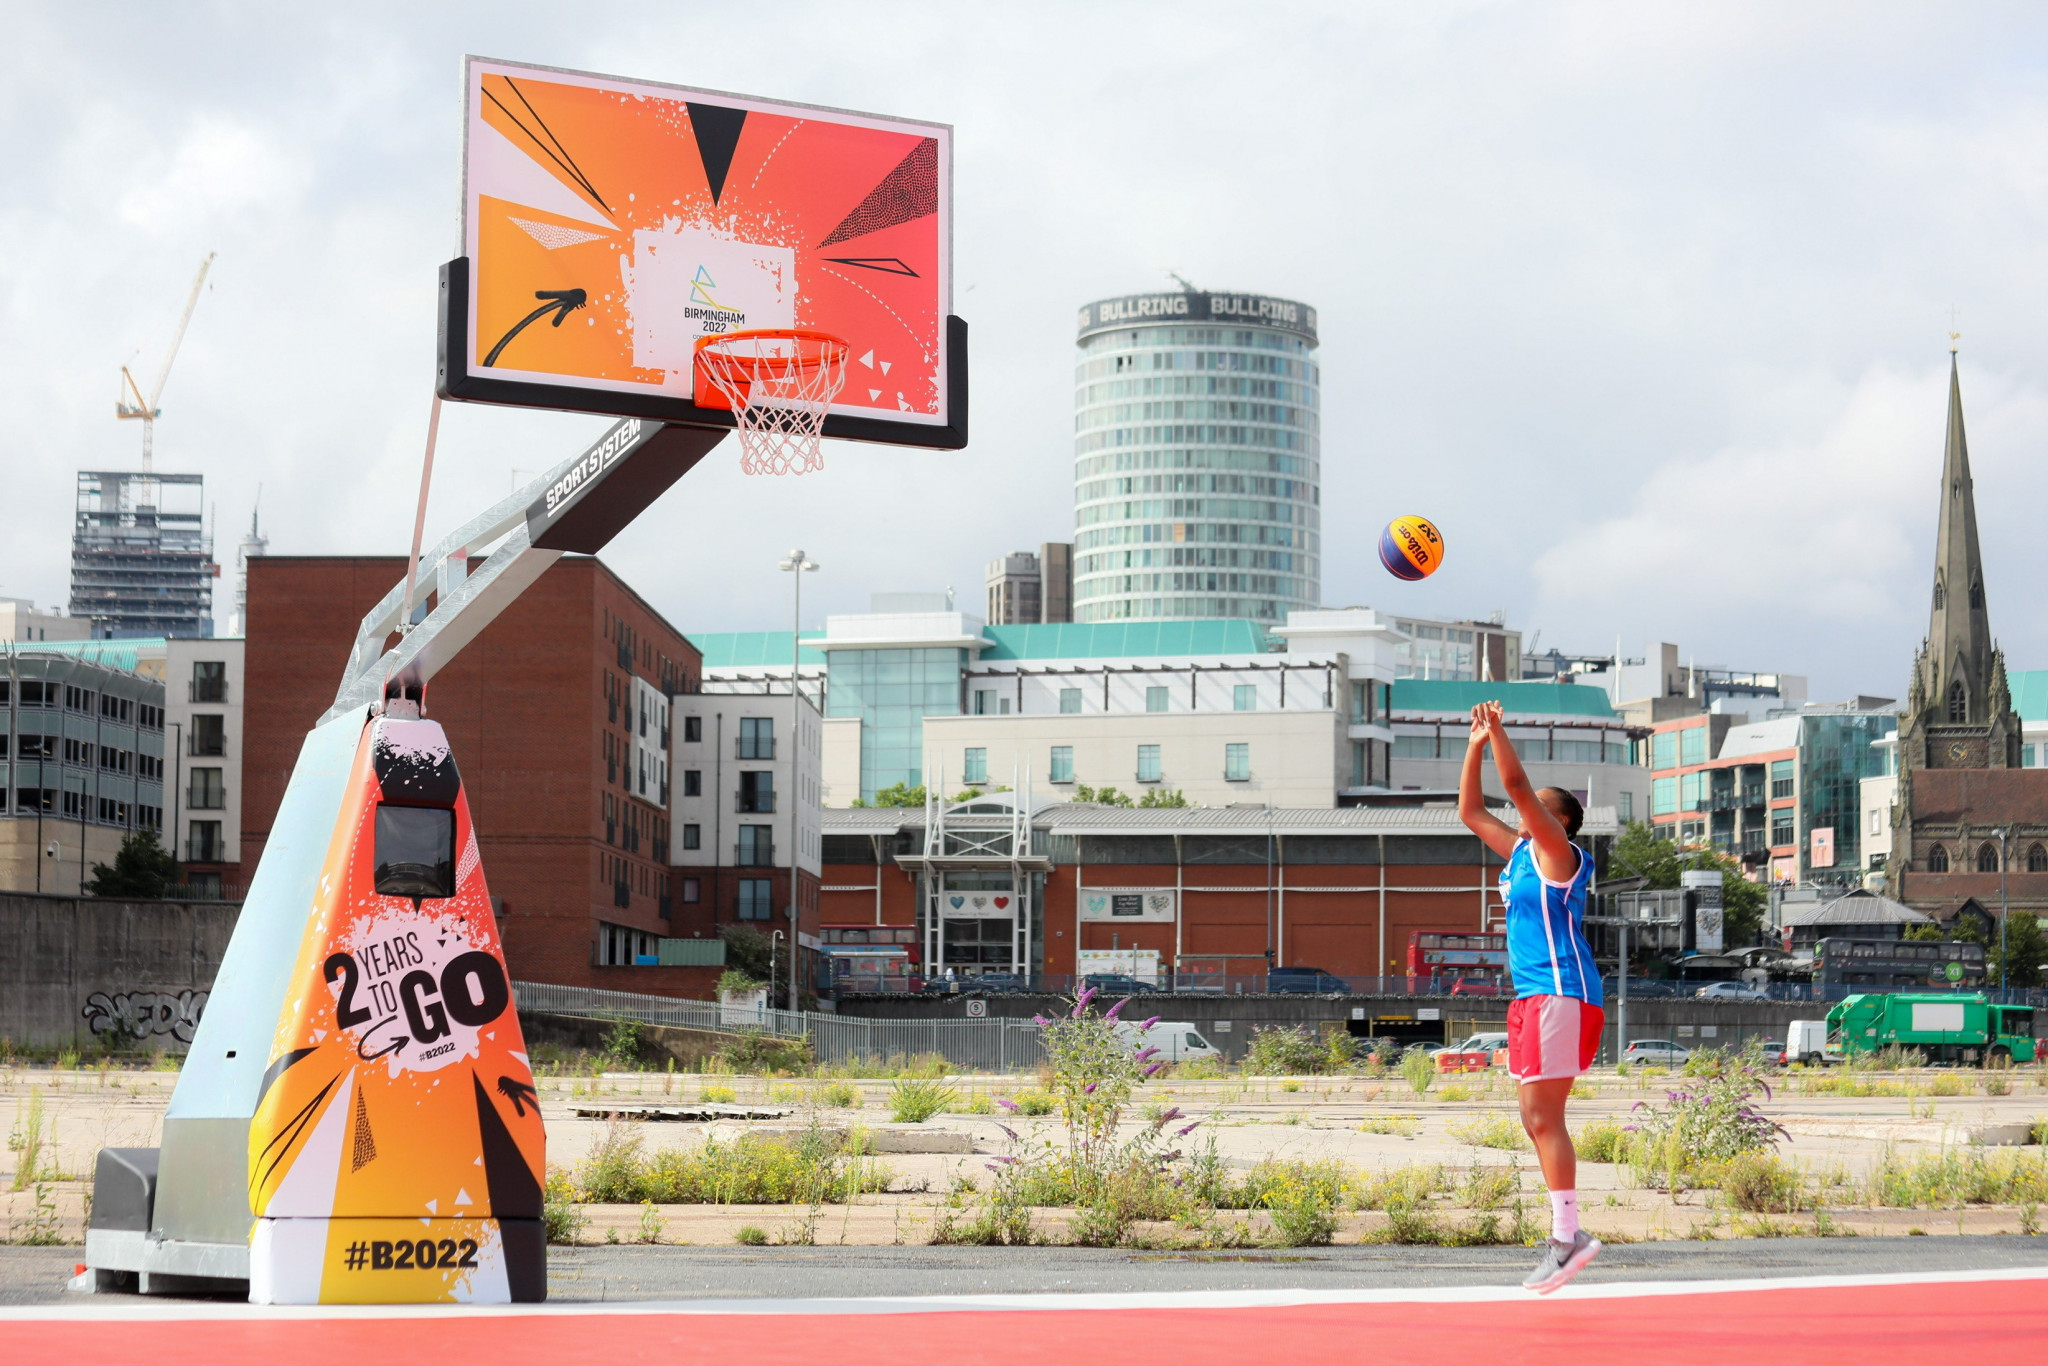 Birmingham 2022 unveiled the location for the 3x3 basketball and beach volleyball venues to mark two-years-to-go ©Birmingham 2022